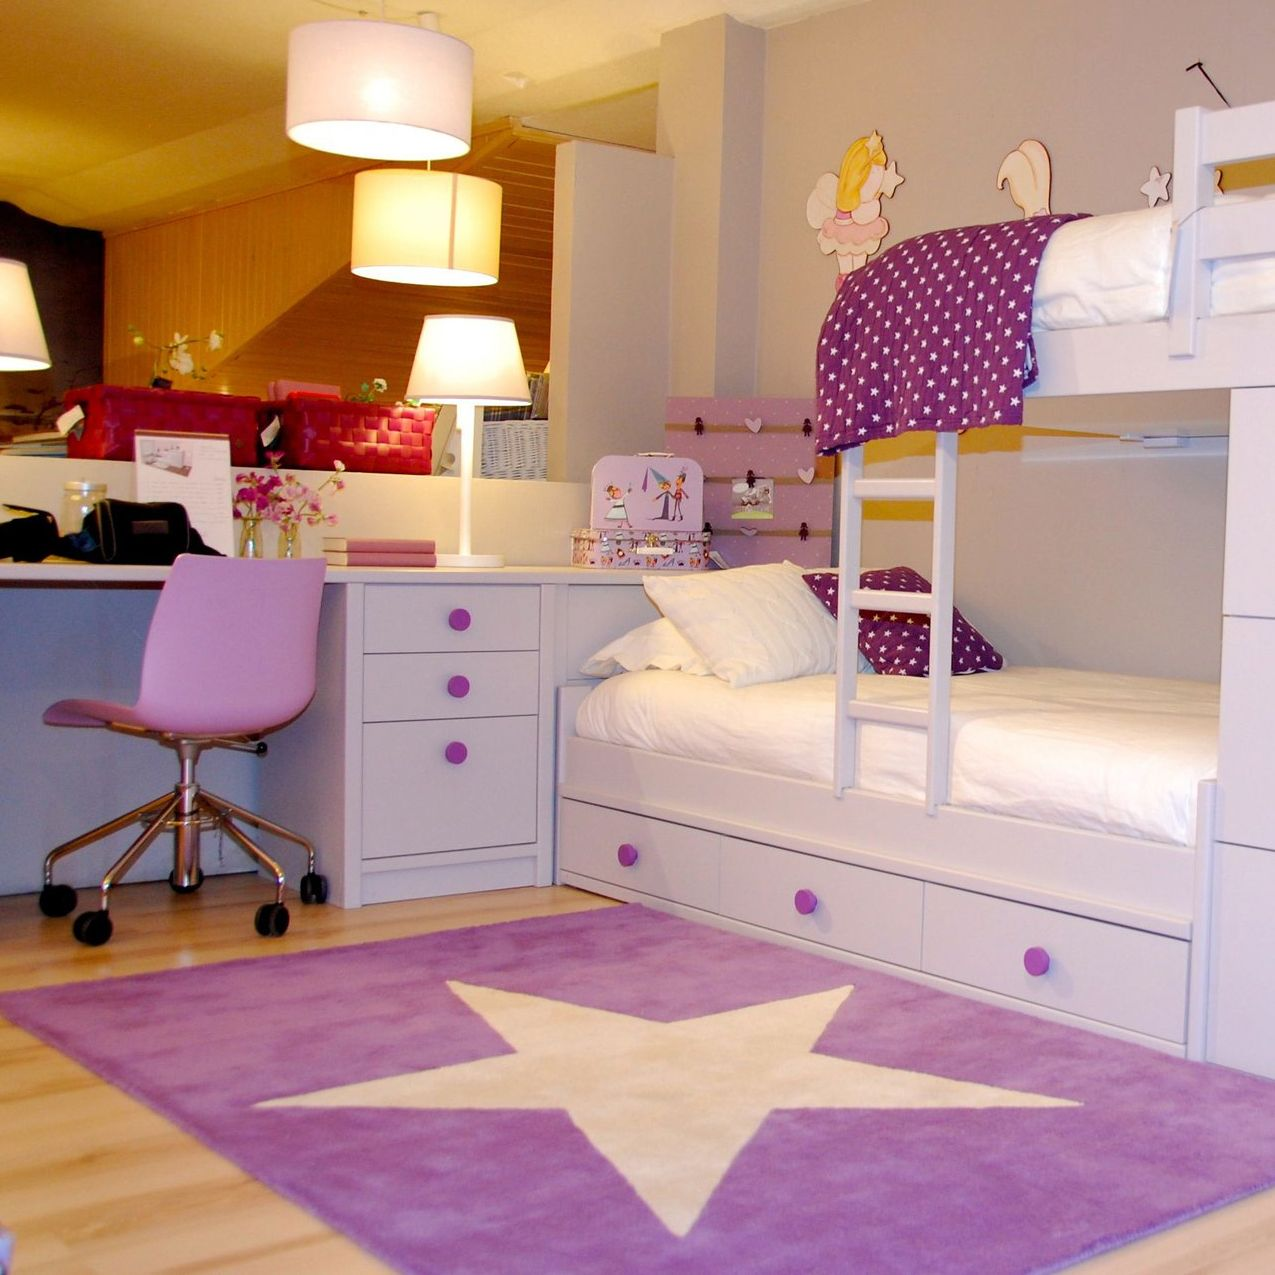 Beautiful Kids Room: Kids Rug Ikea: Create Beauty And Comfort In Your Kid's